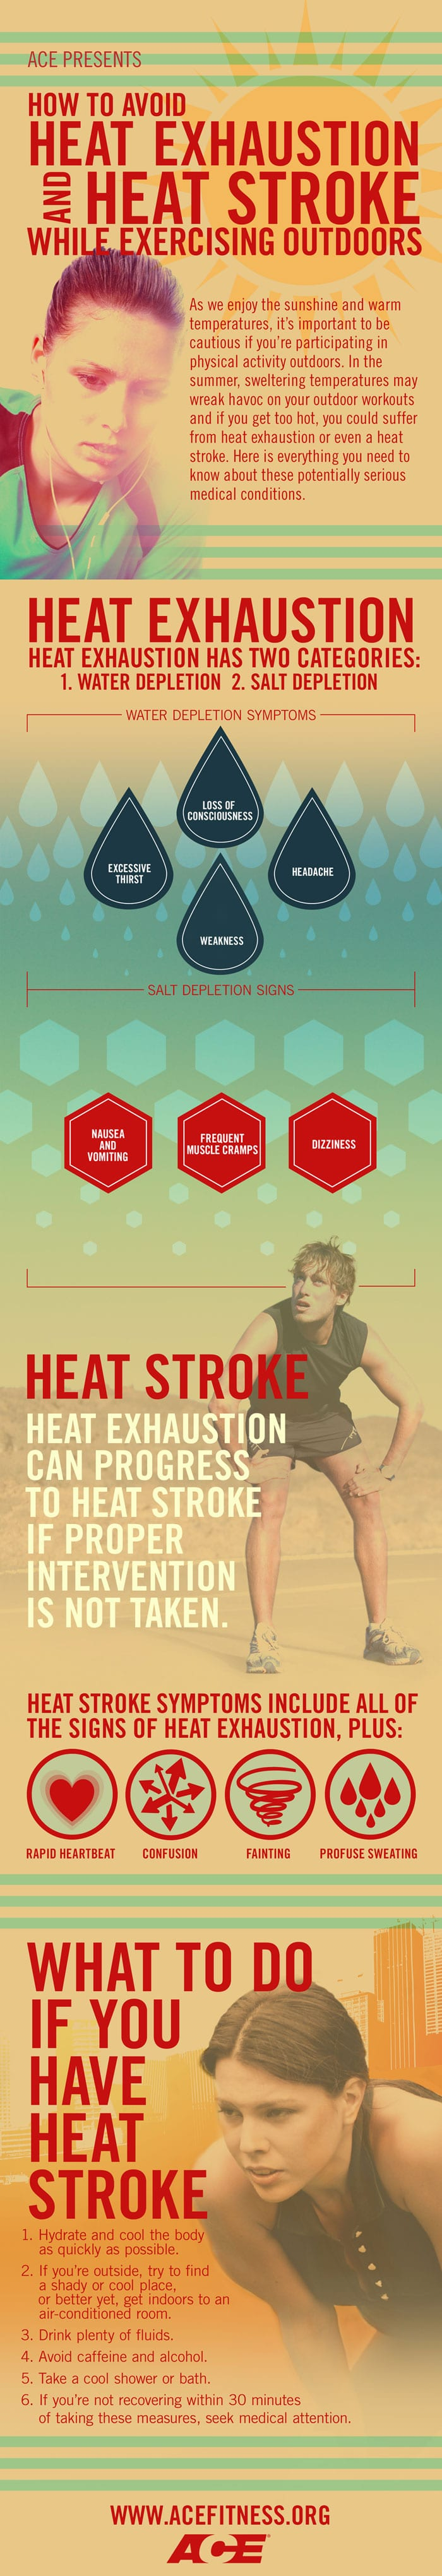 How to avoid heat exhaustion and heat stroke while exercising outdoors